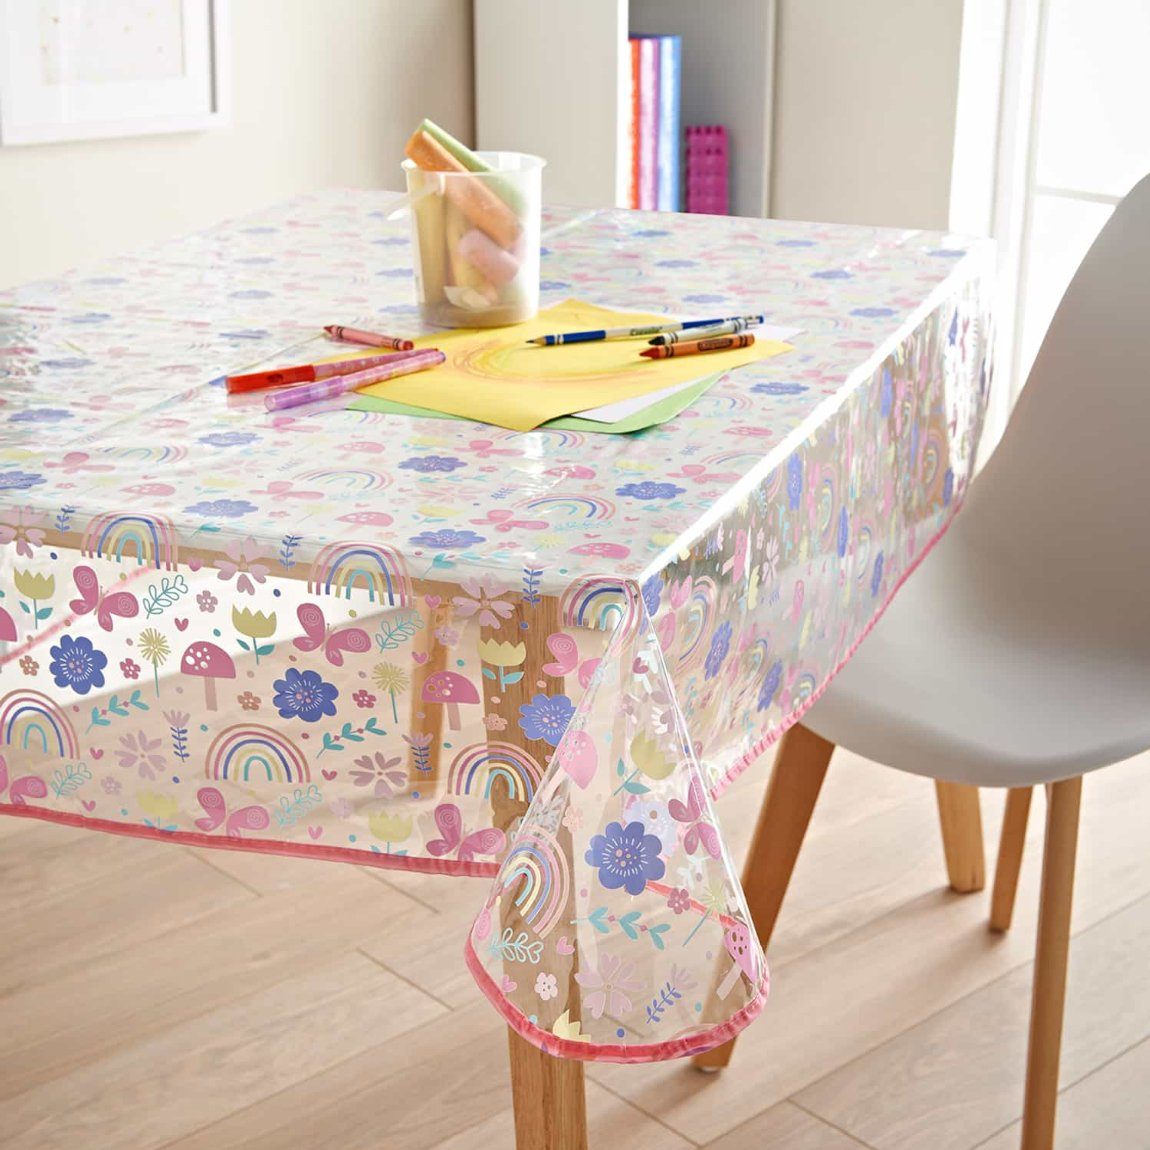 Kids Wipe Clean Tablecloth - Rainbows